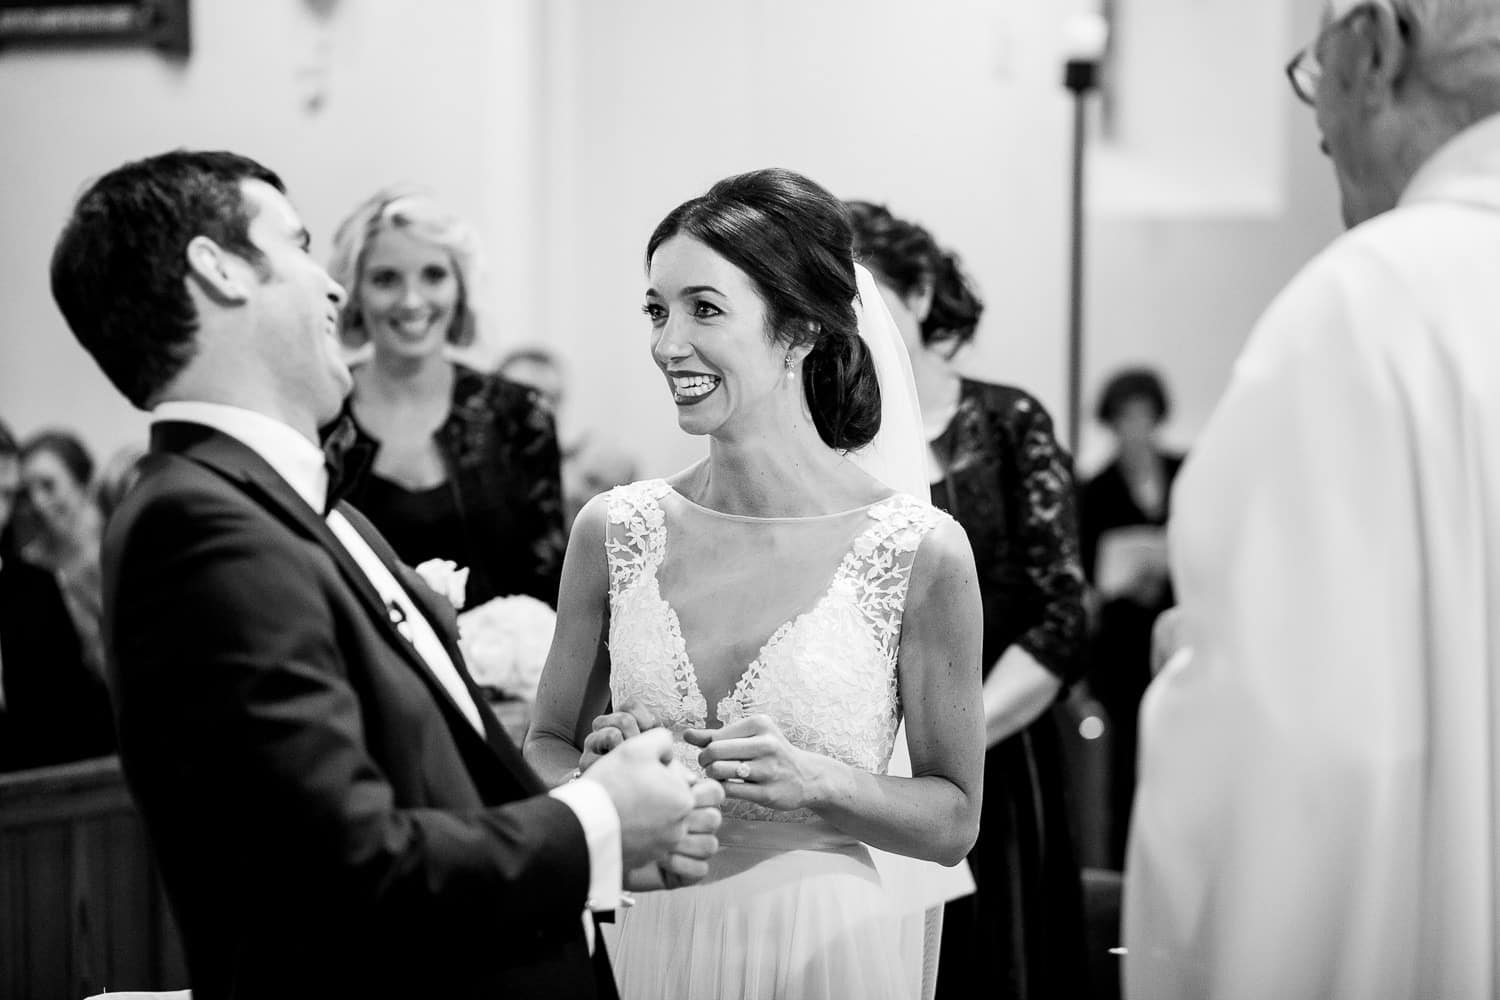 GARETH MCGAUGHEY PHOTOGRAPHY - BELLINGHAM CASTLE WEDDING 01400